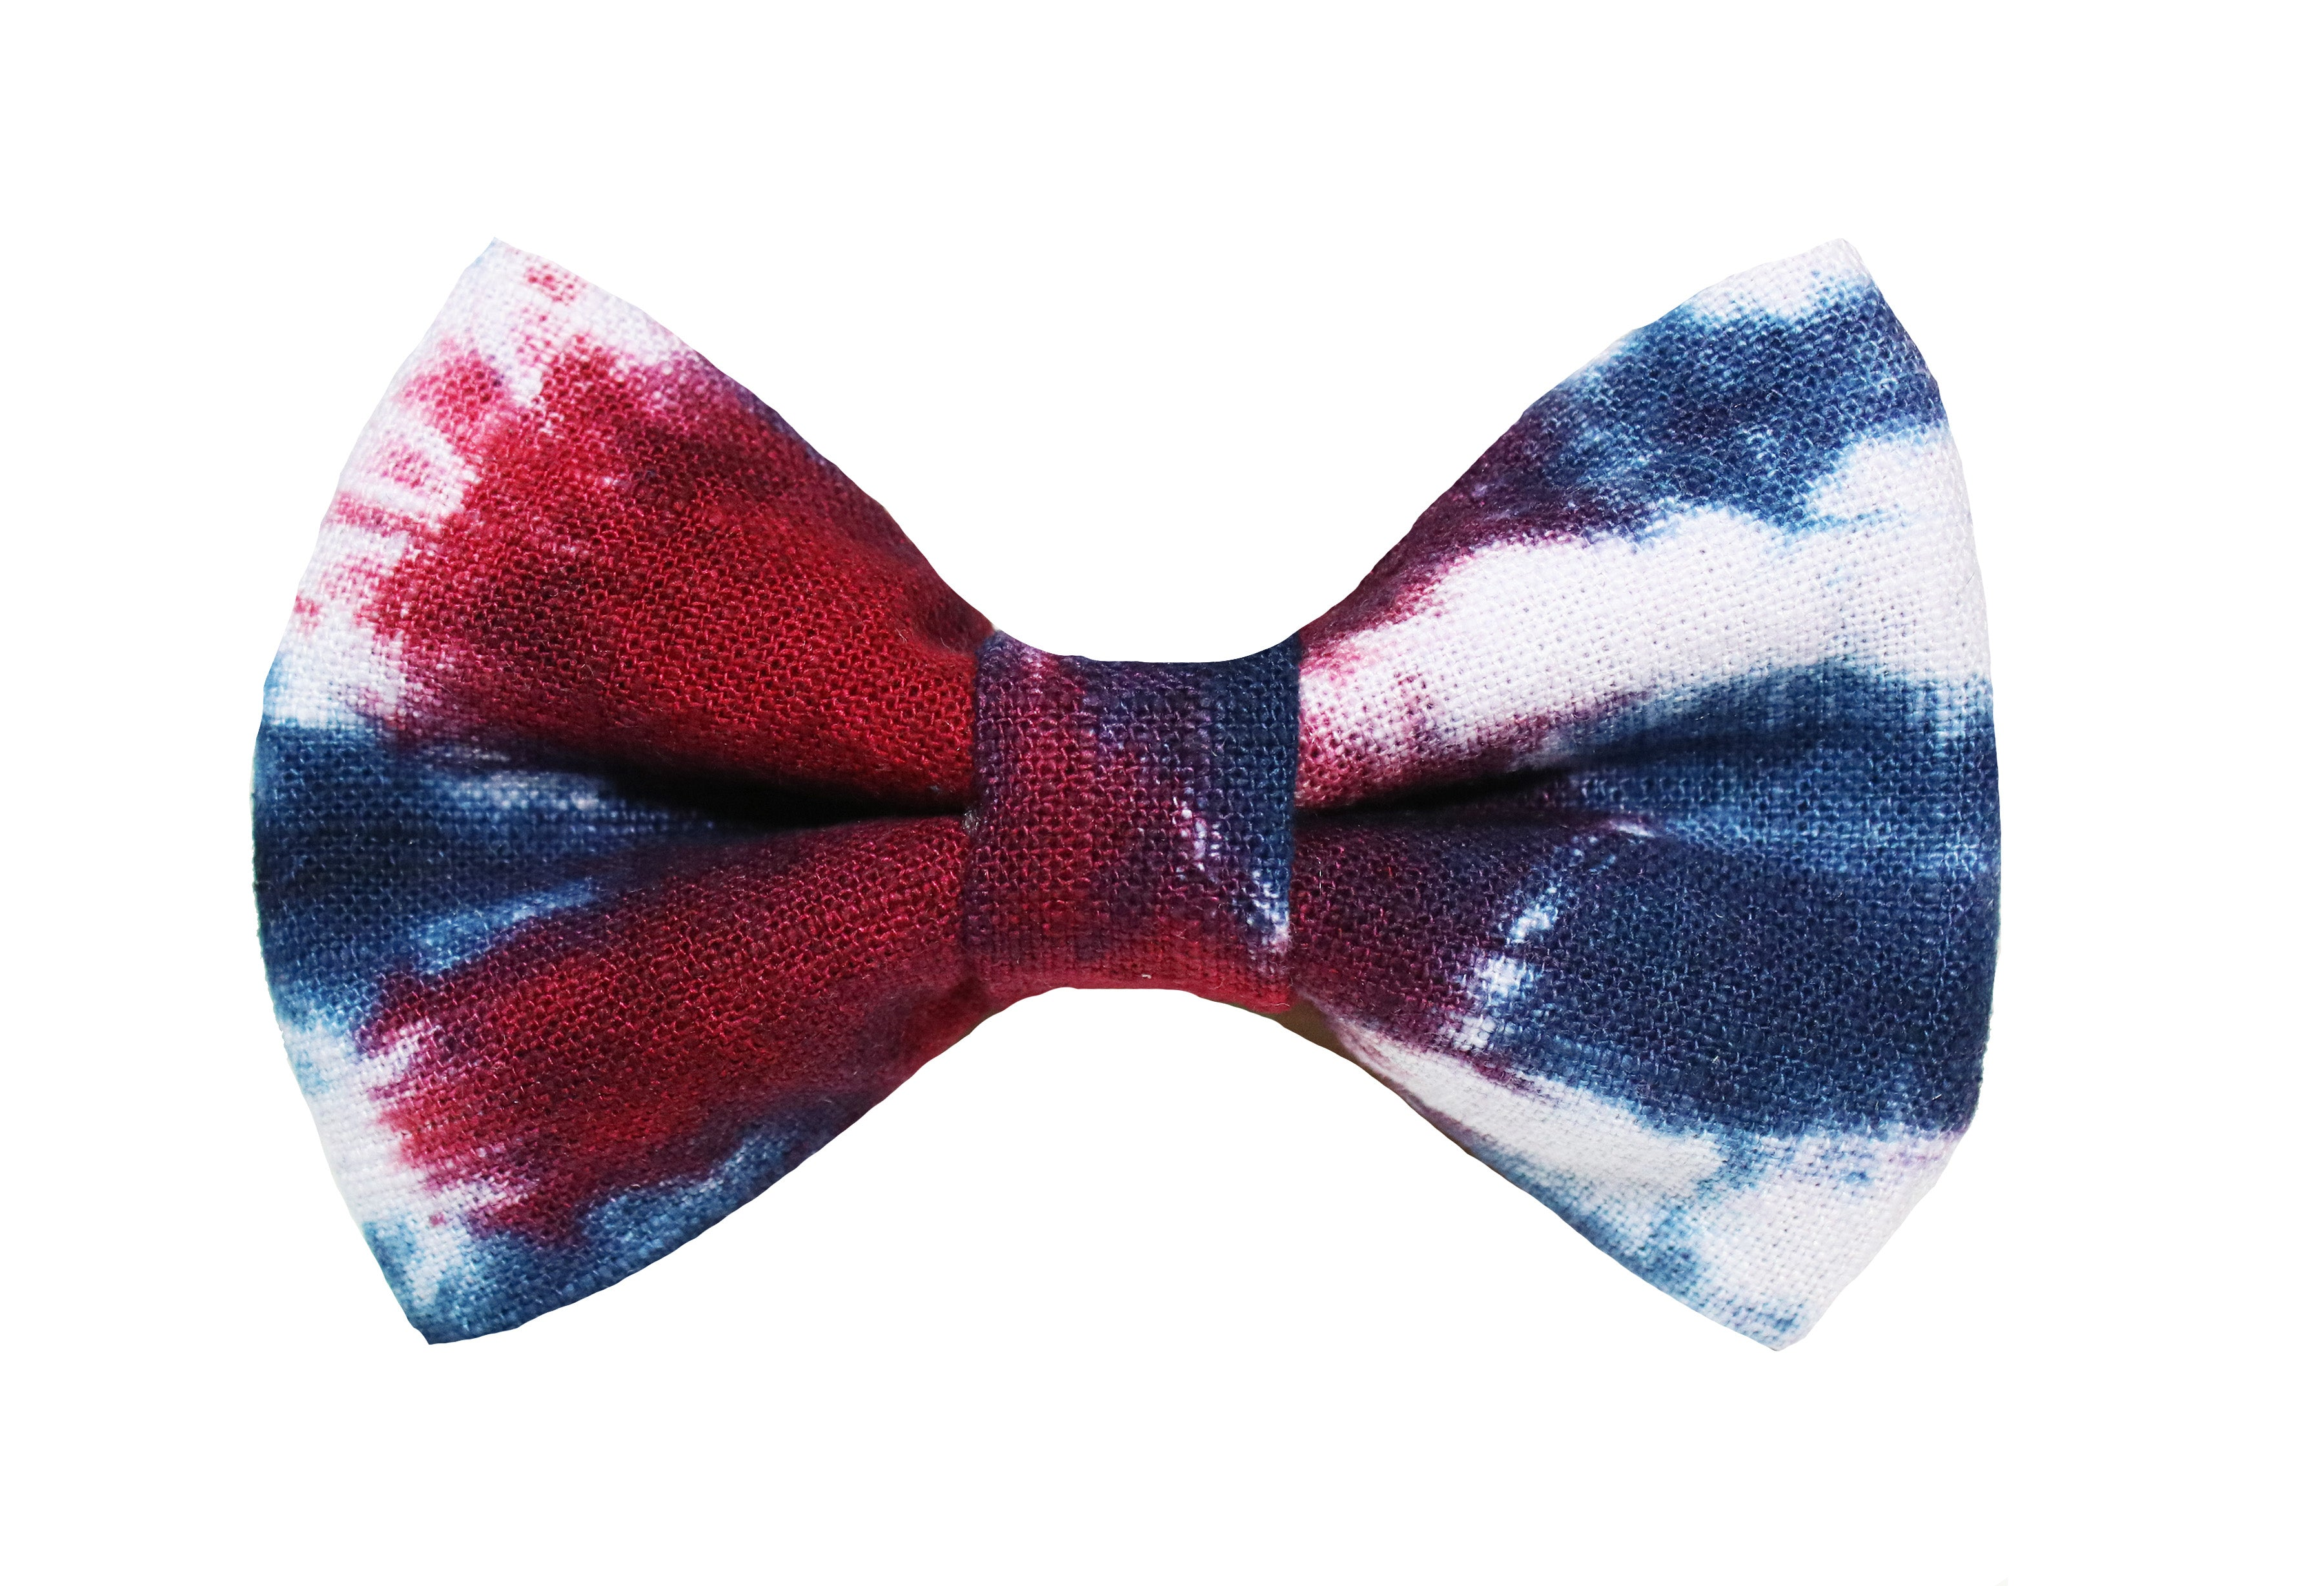 ↟ The Firework Bow Tie